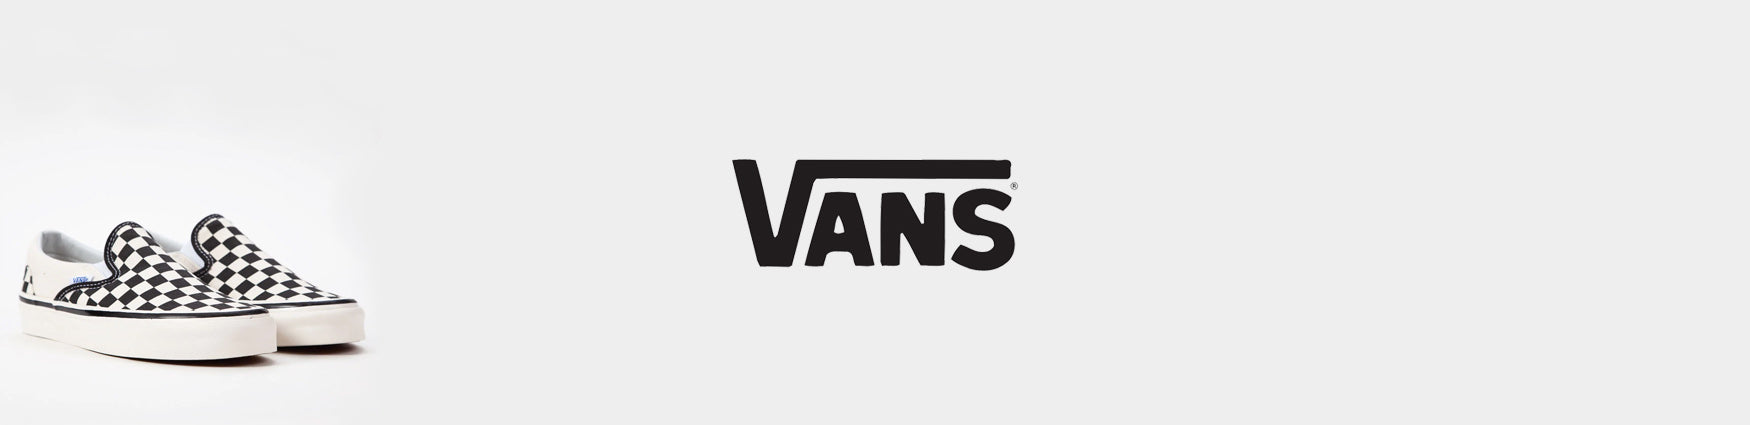 Vans Anaheim Classic Slip-On 98 Black Trainers | Shop Vans shoes trainers from Roo's Beach